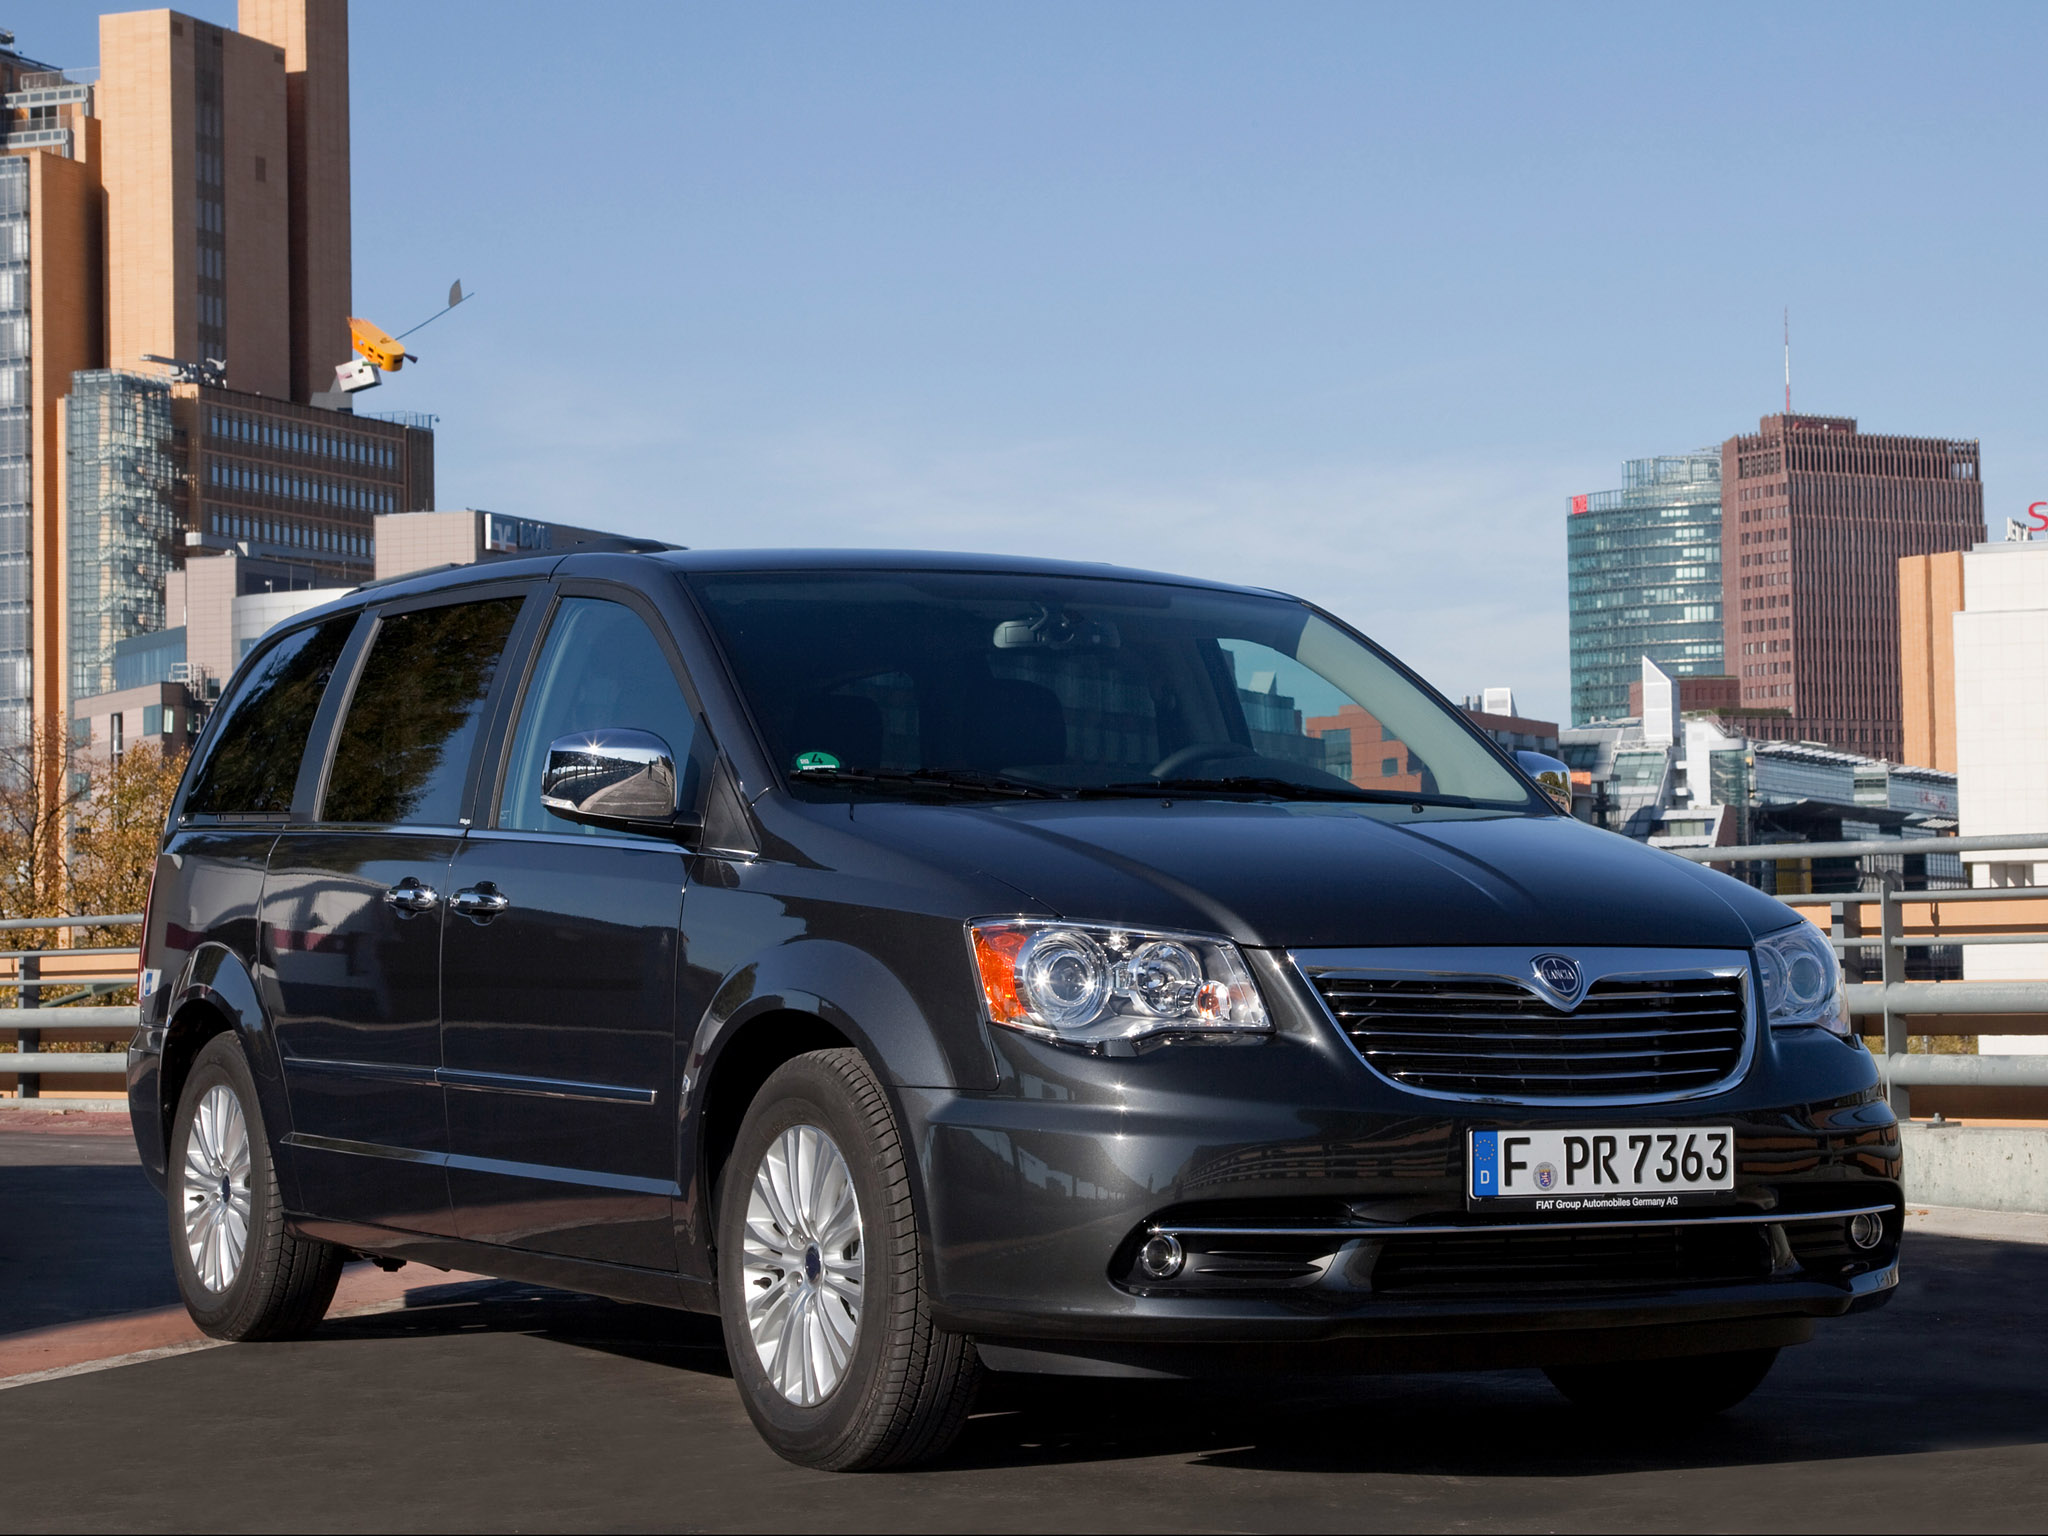 lancia grand voyager 2011 lancia grand voyager 2011 photo 15 car in pictures car photo gallery. Black Bedroom Furniture Sets. Home Design Ideas